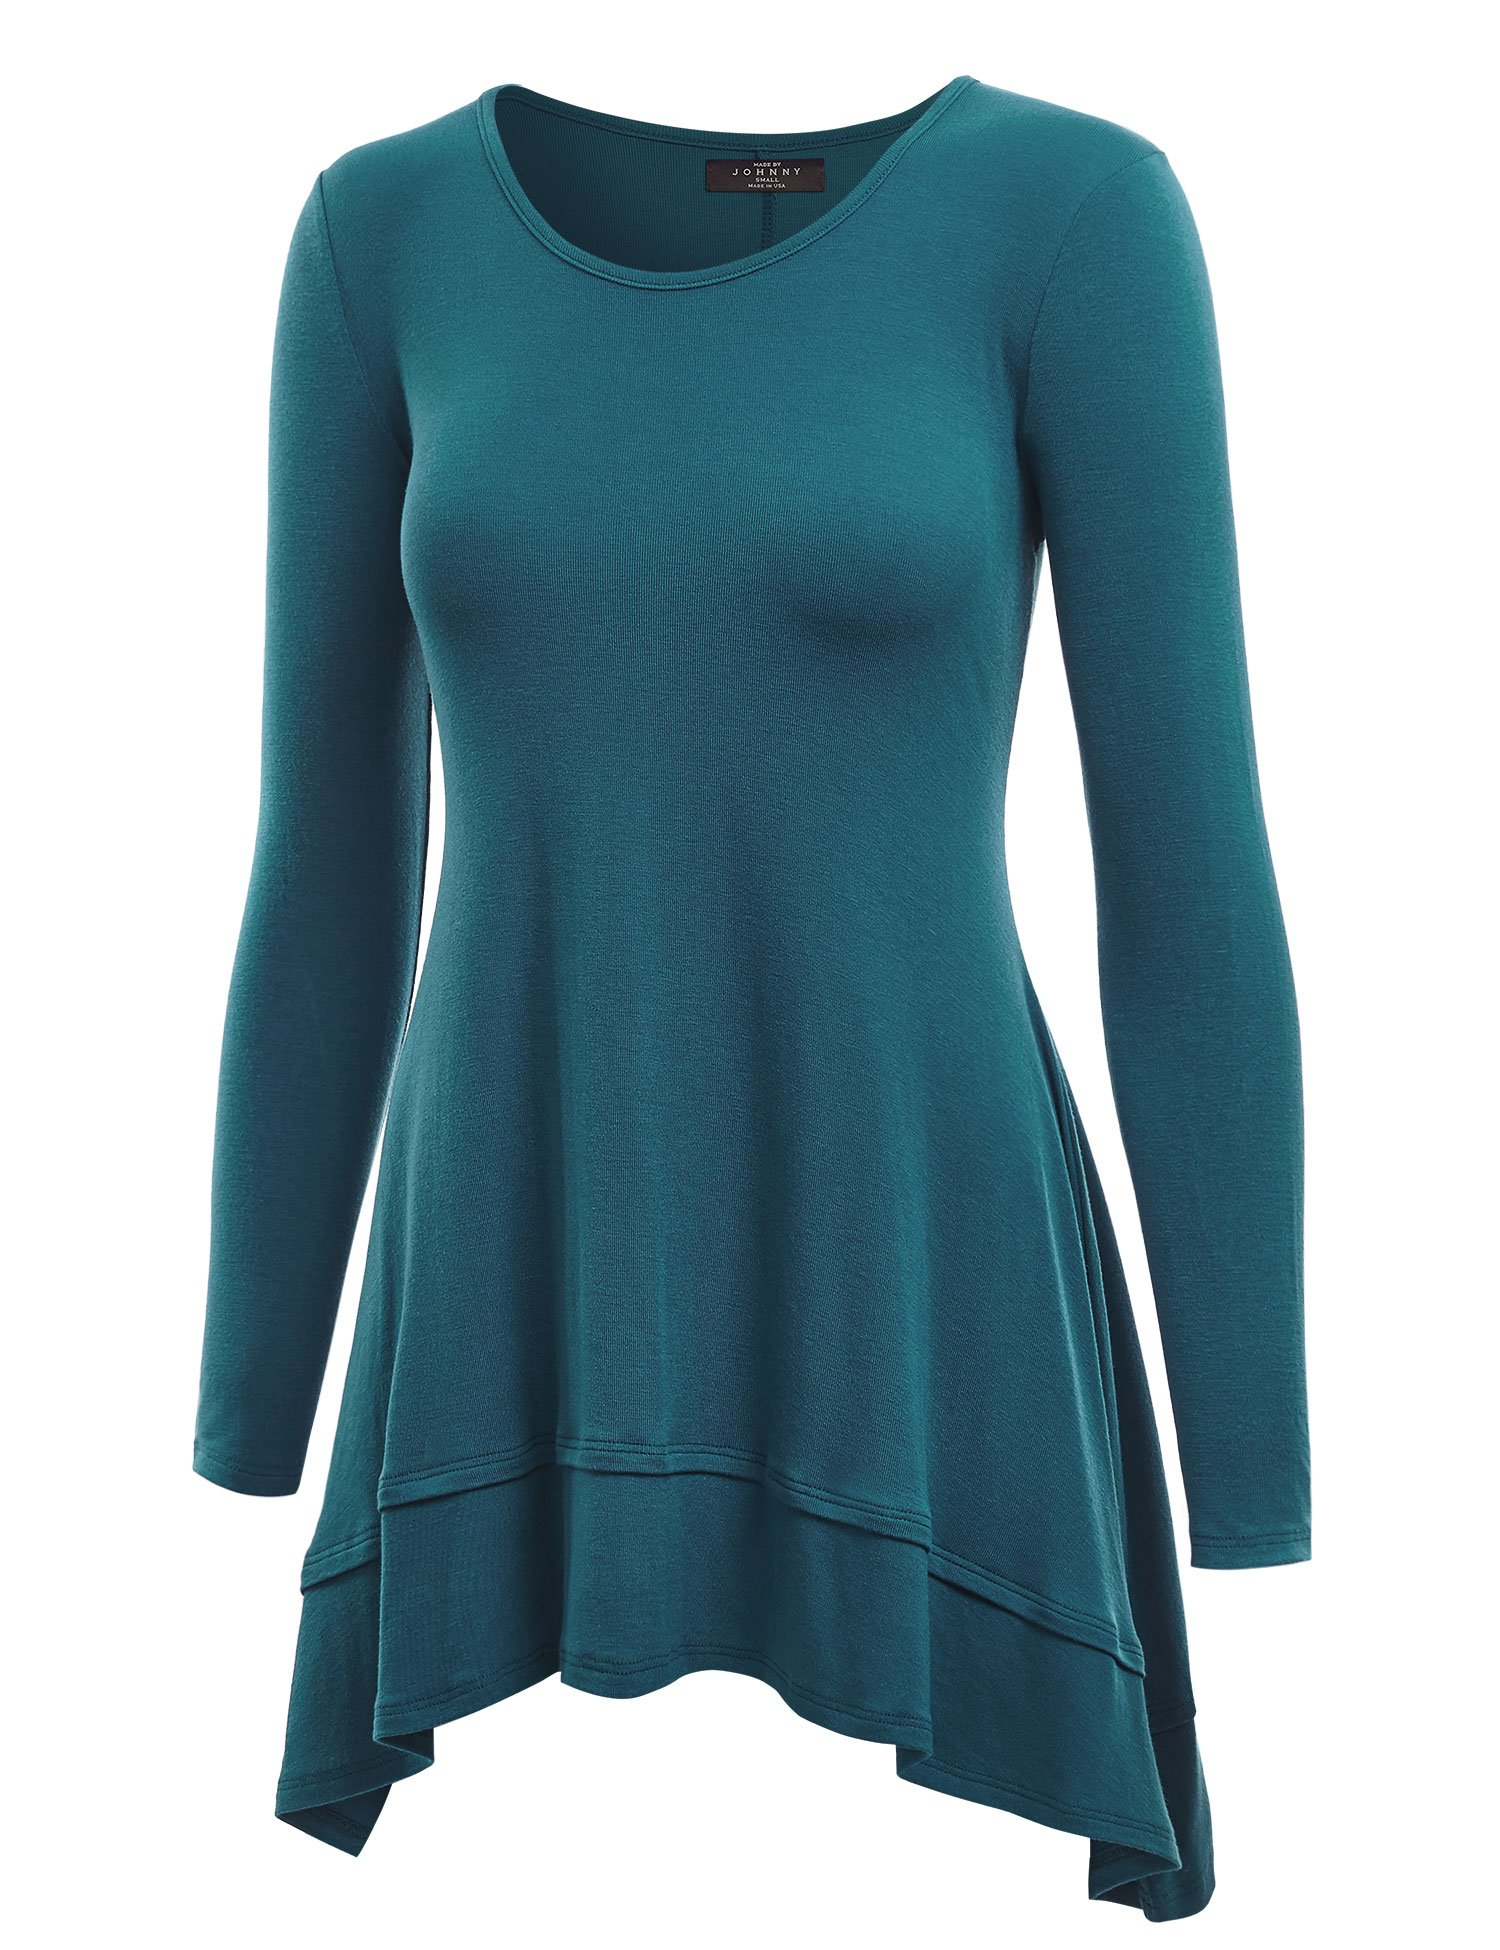 Made By Johnny Women's V Neck Short Sleeve Ruffle Hem top/Long Sleeve Double Layer Tunic Top